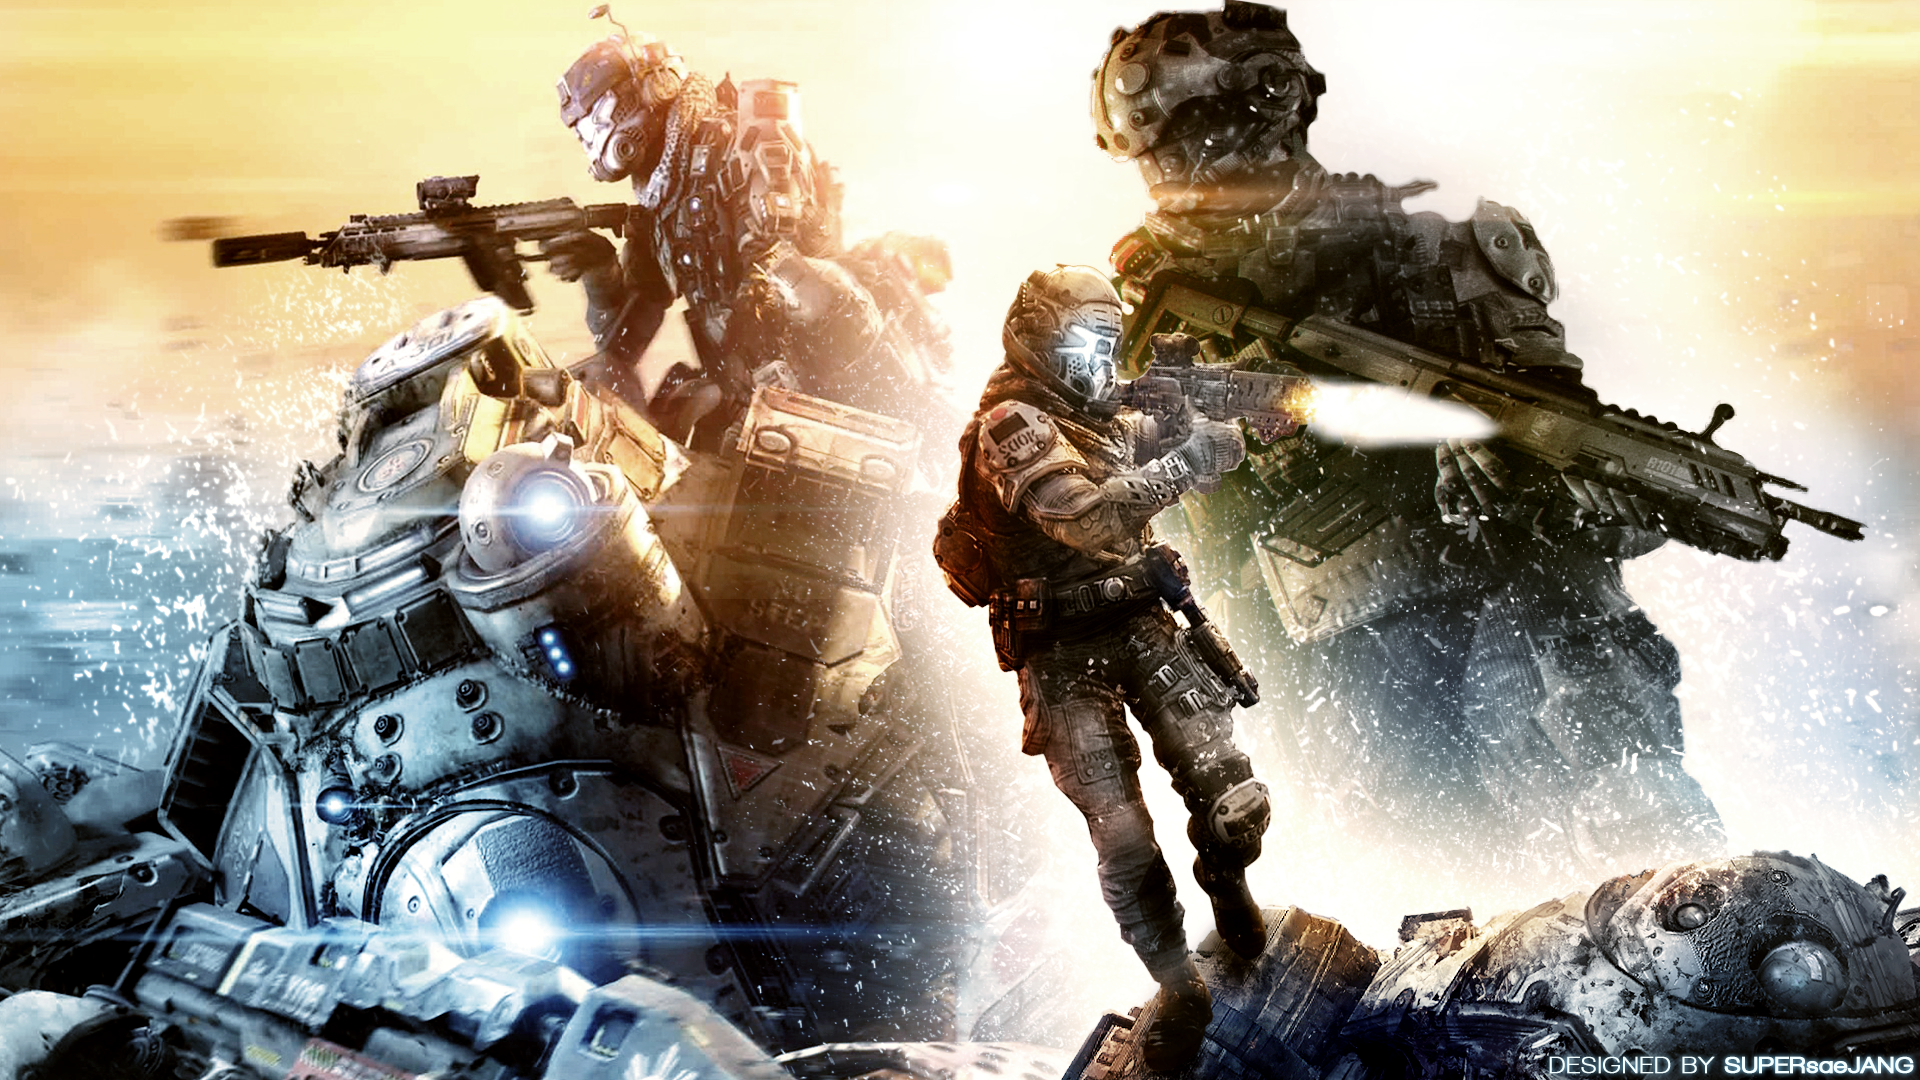 Titanfall Wallpaper by SUPERsaeJANG More Like This